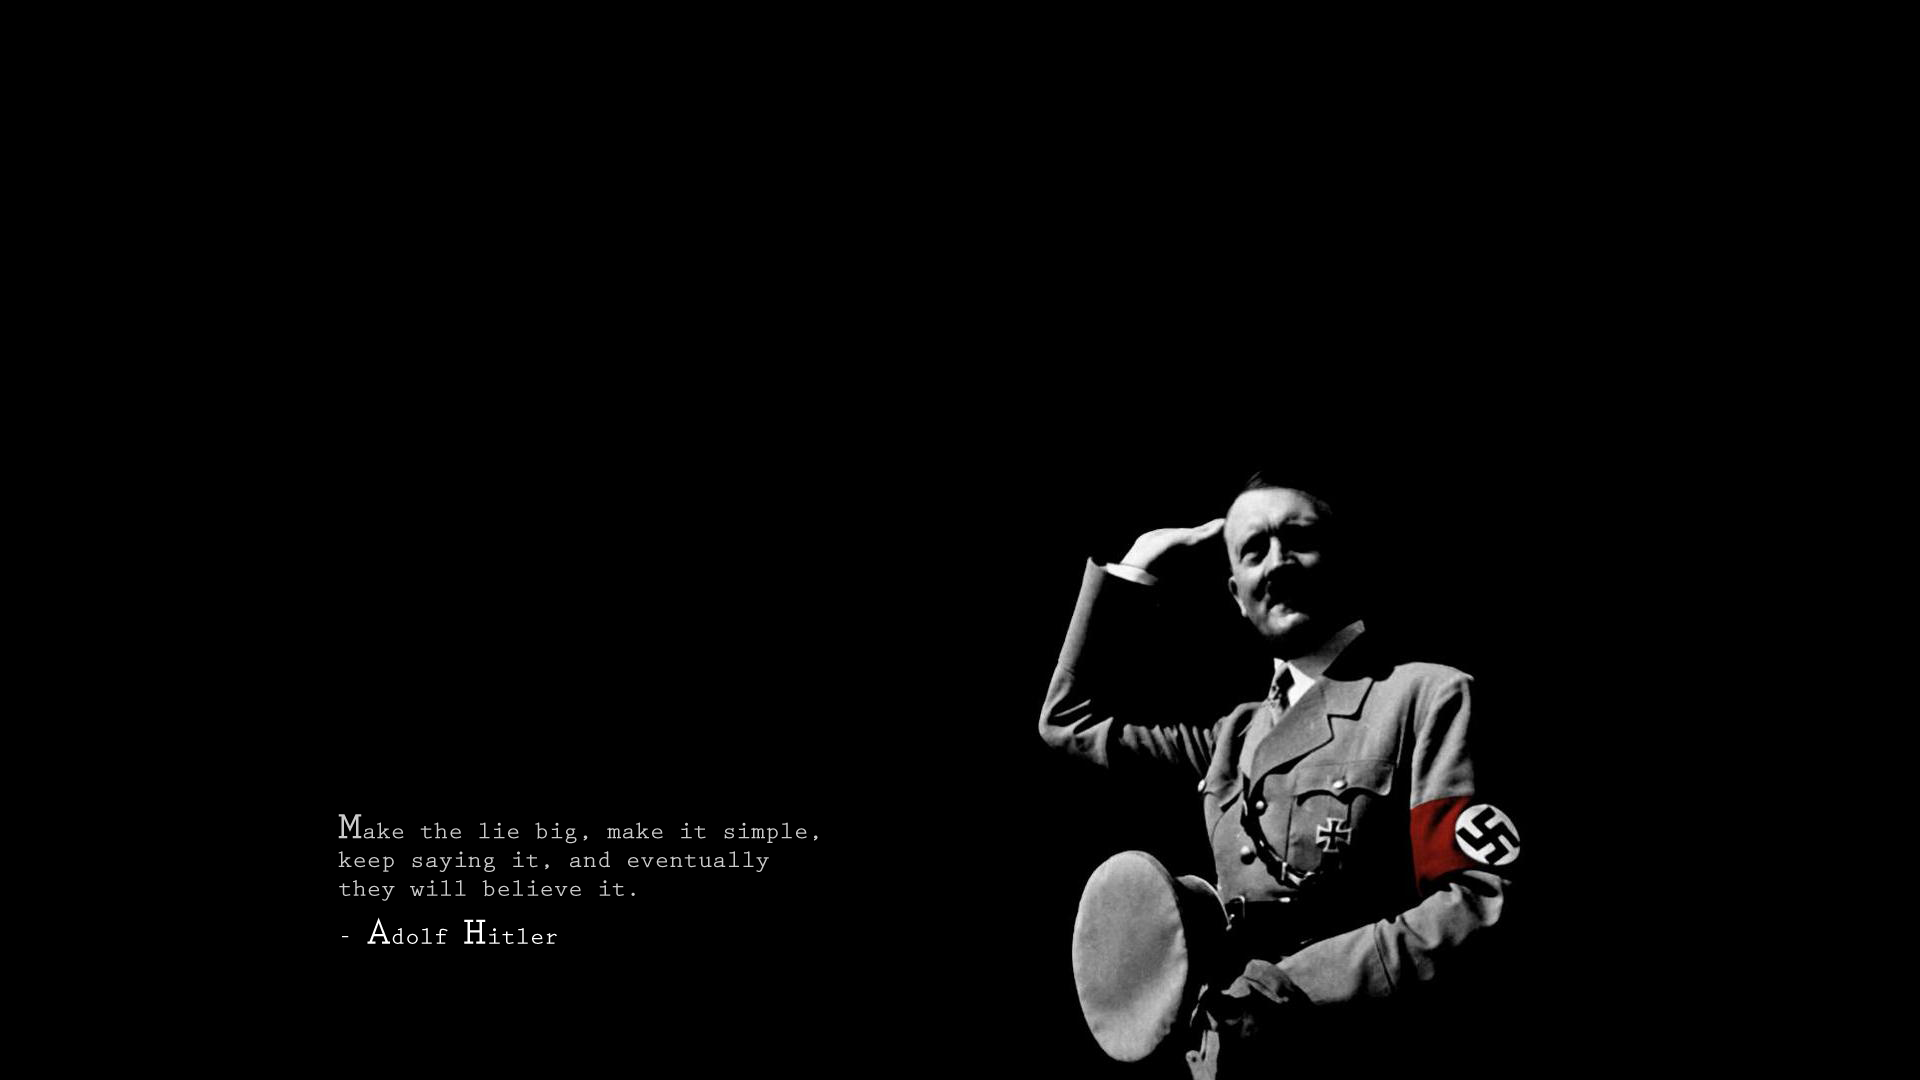 nazi wallpapers page 1 - photo #18